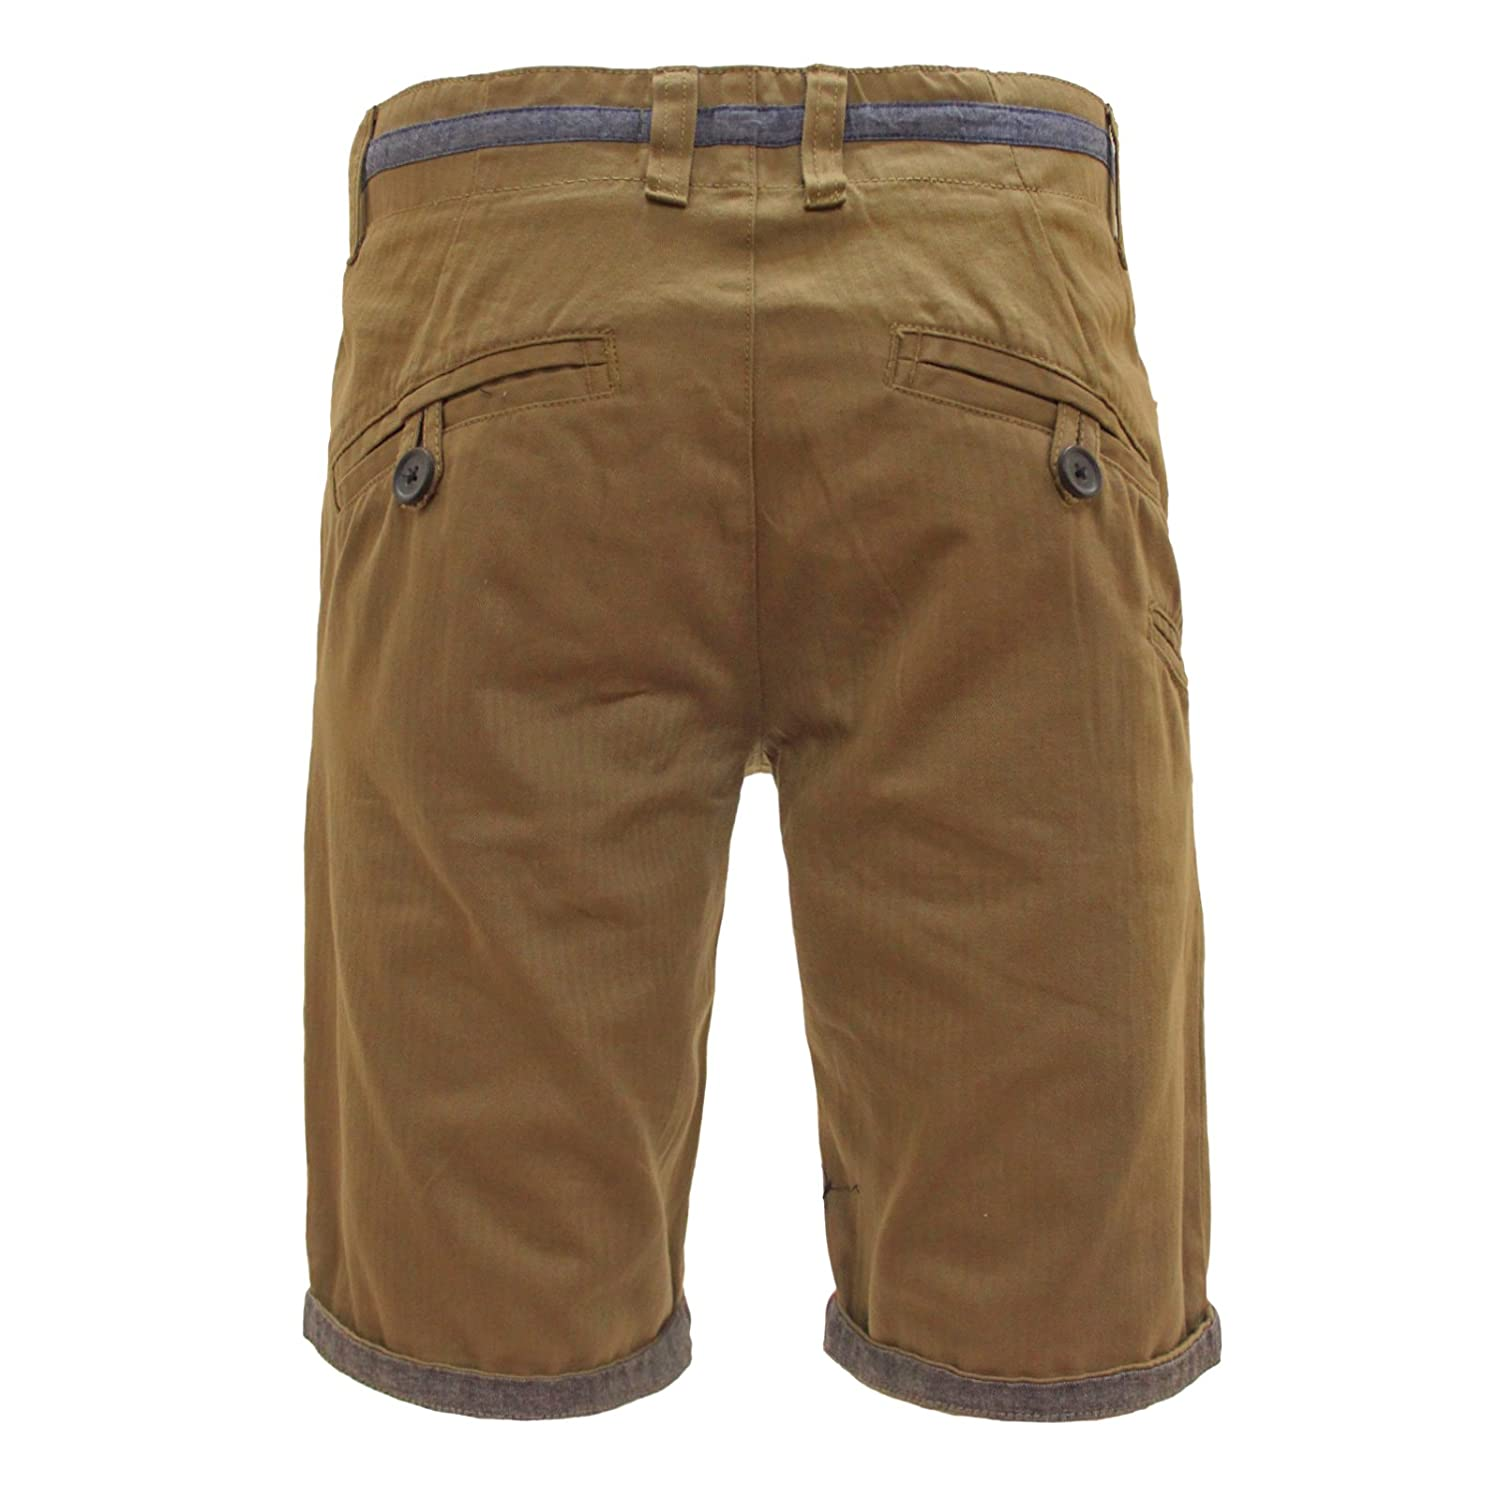 """Bellfield Mens Shorts New Tan Size 28"""" Clothing, Shoes & Accessories"""